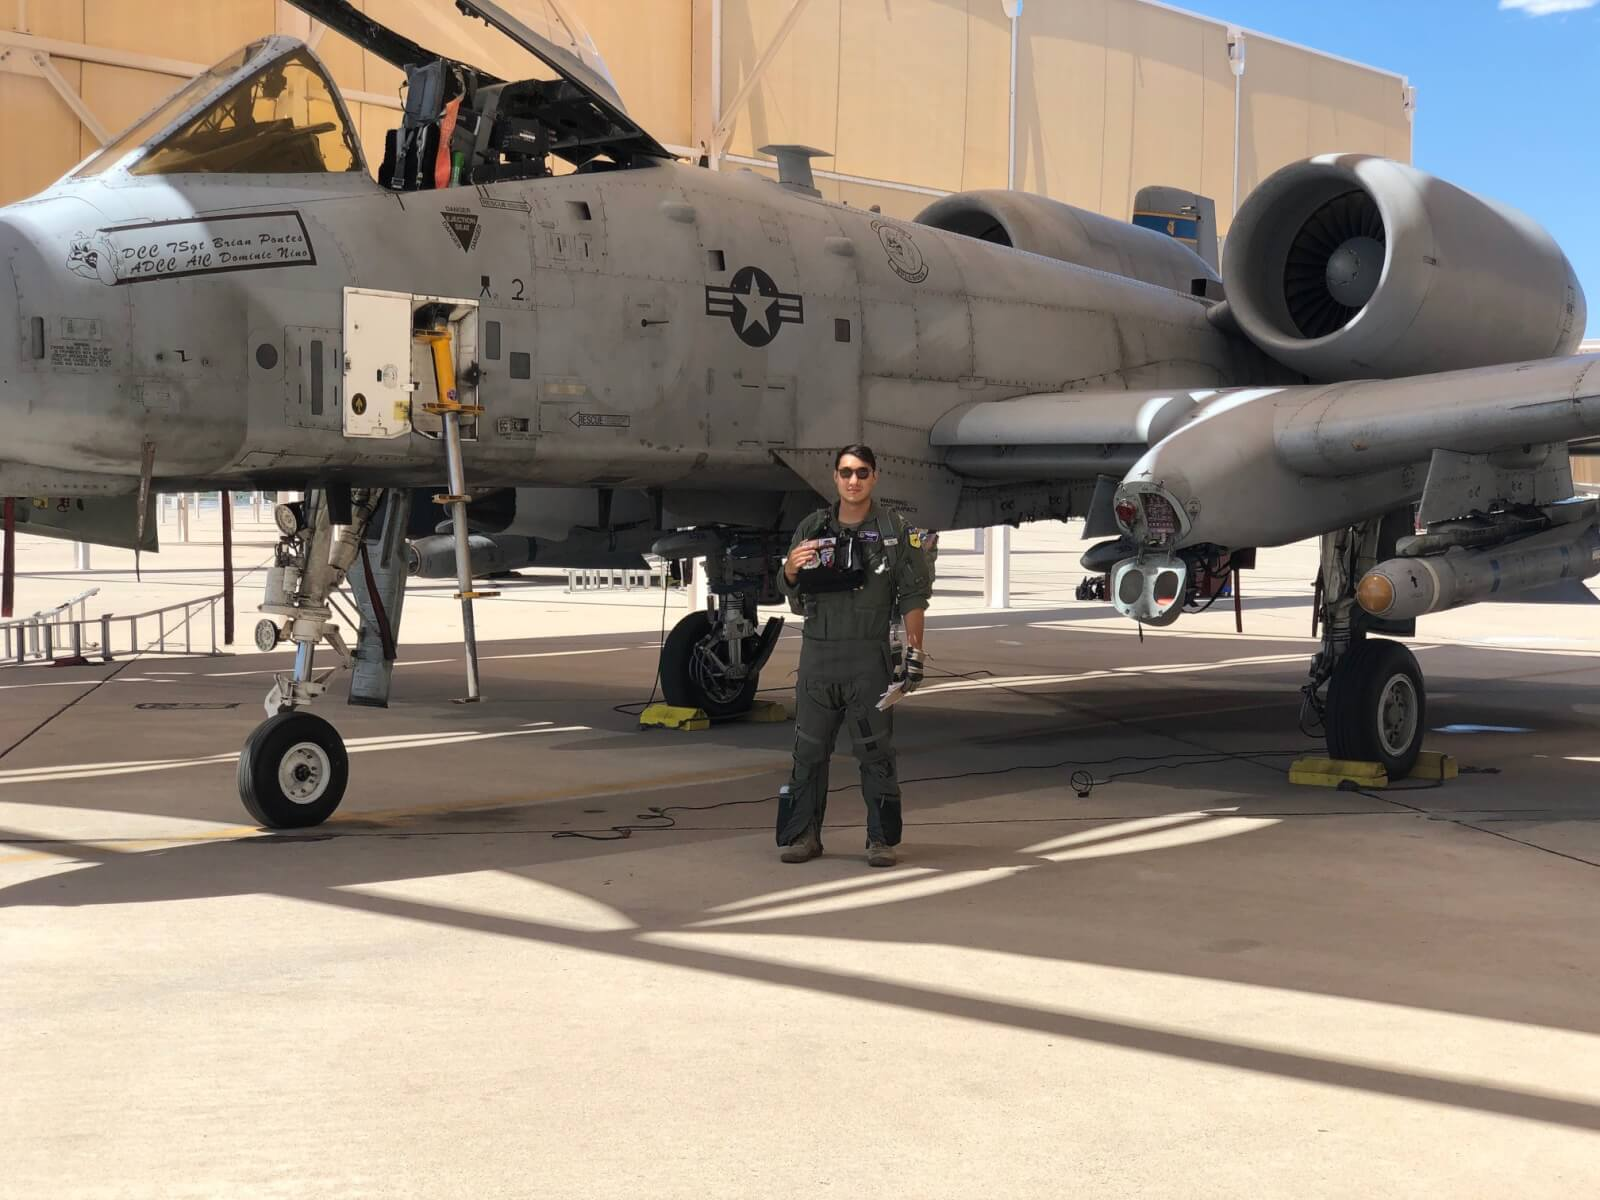 Warthog pilot next to plane